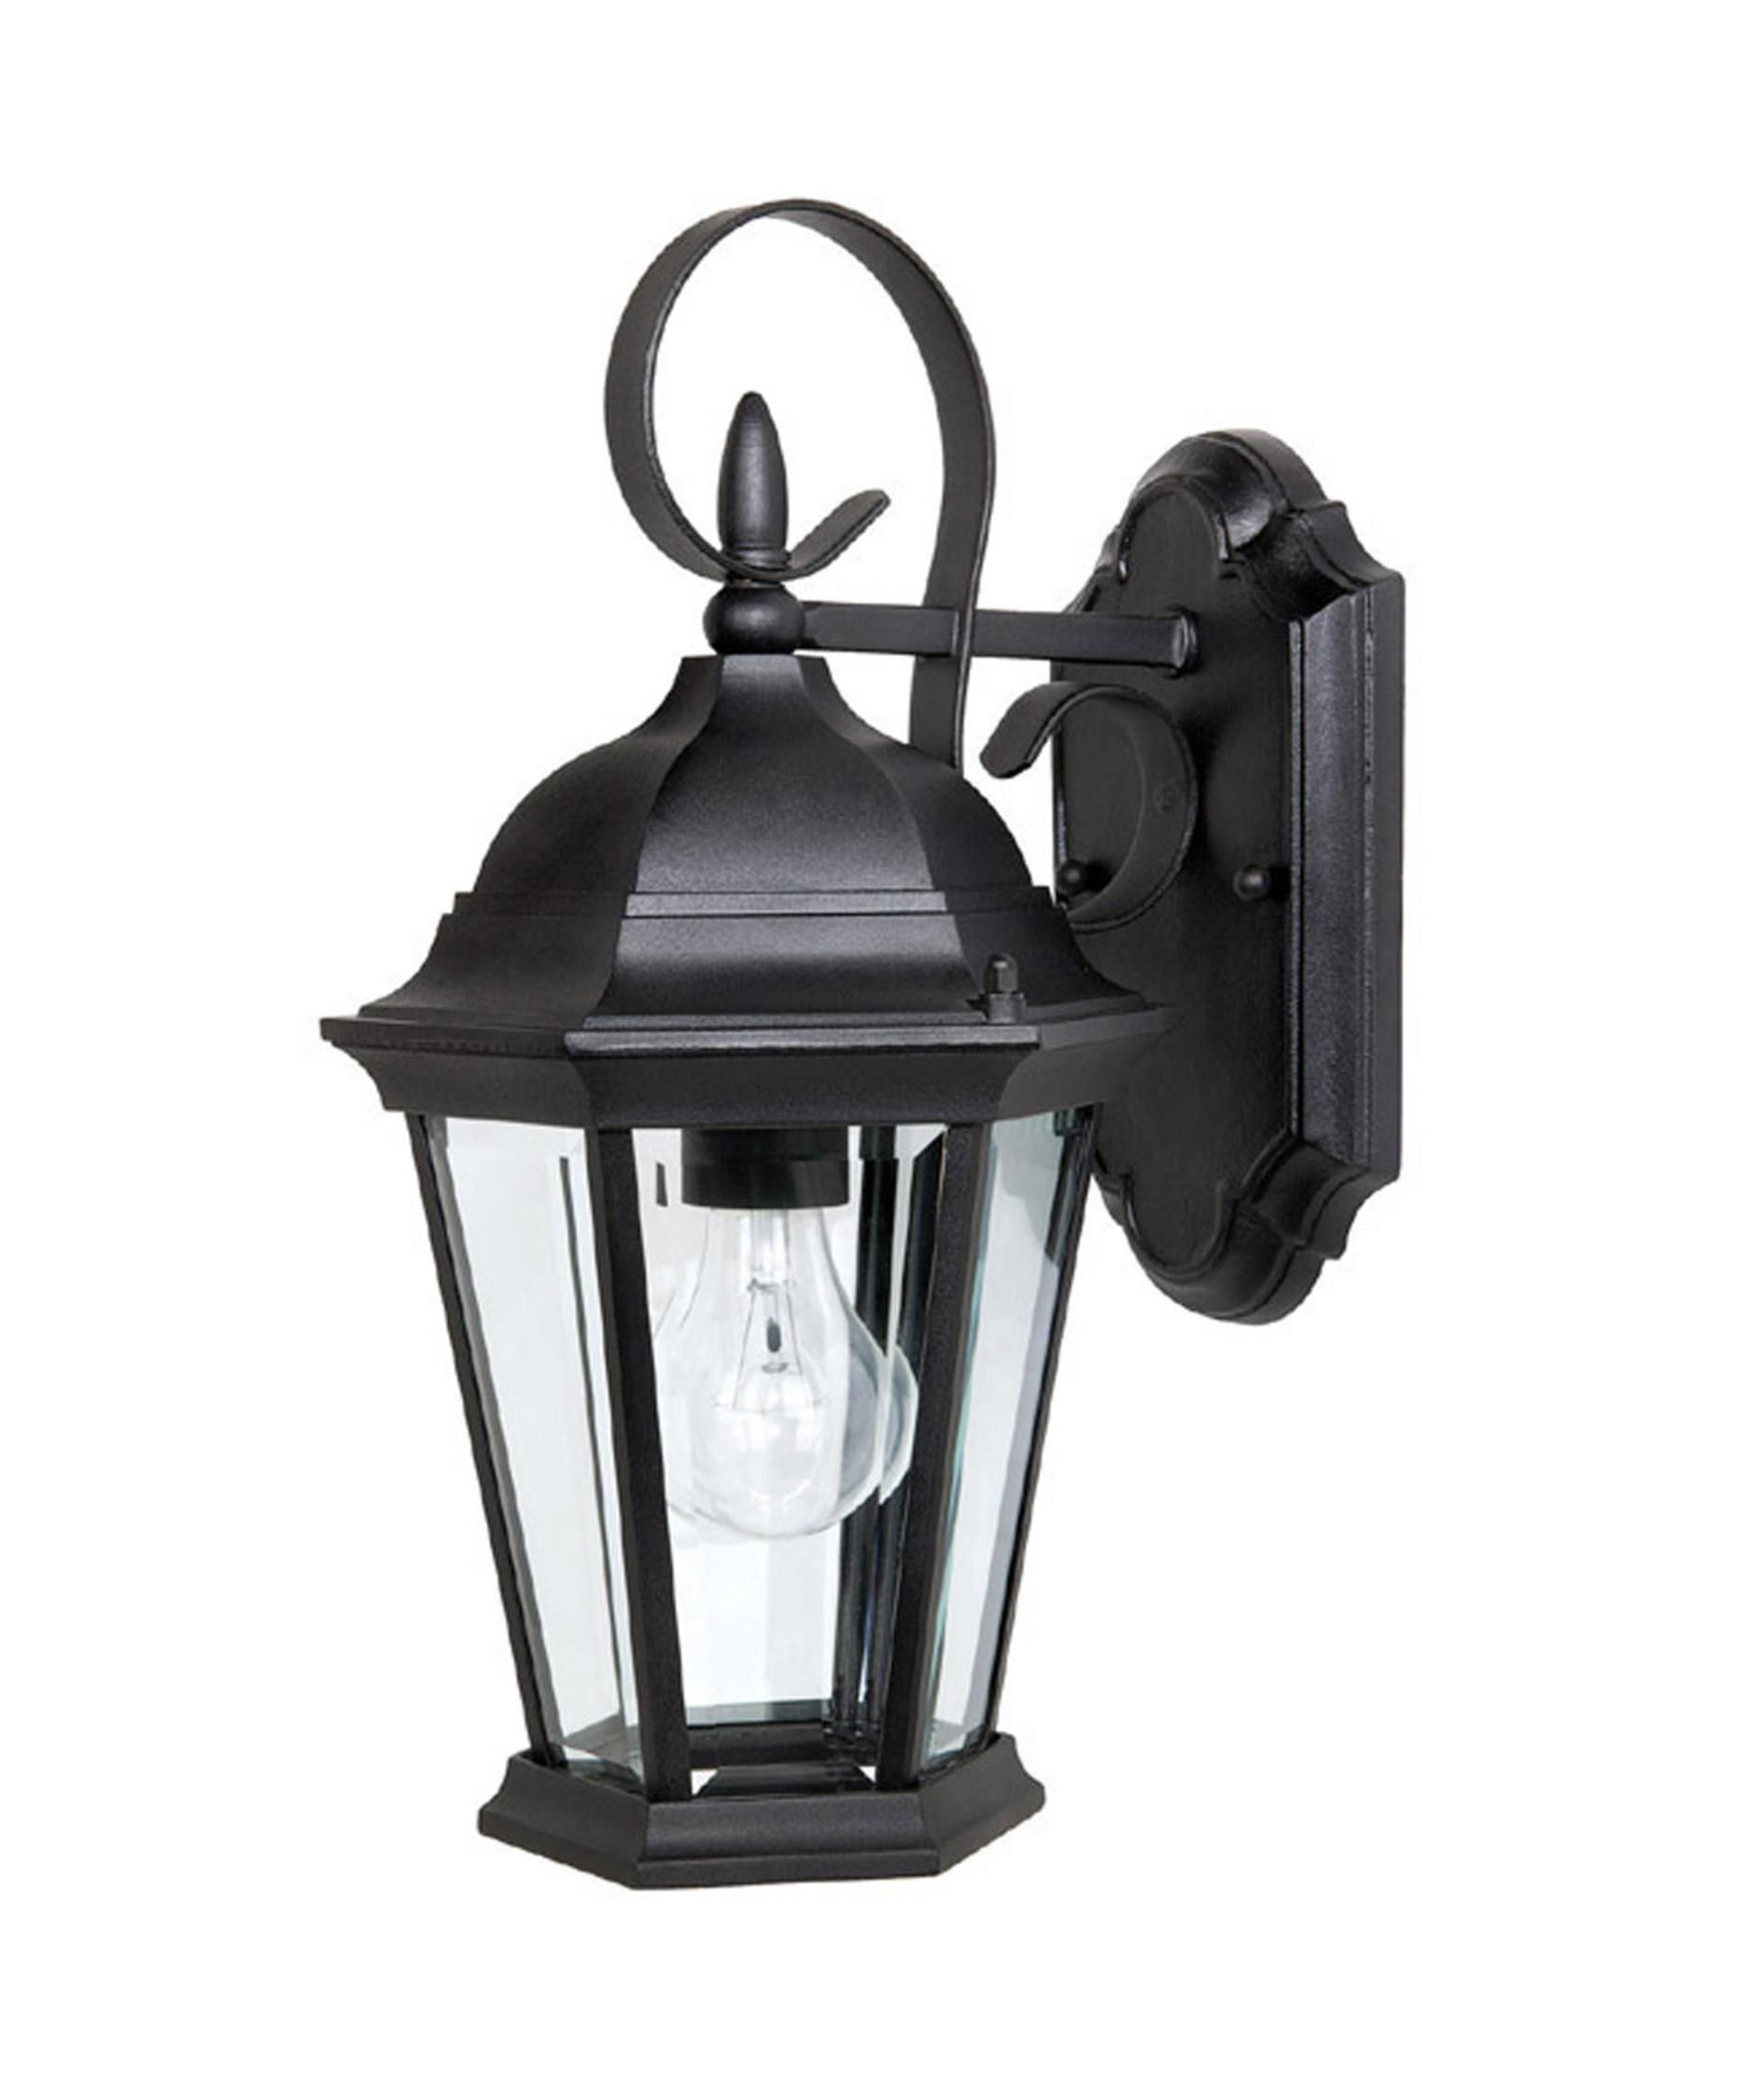 Outdoor carriage light fixtures httpdeai rankfo pinterest outdoor carriage light fixtures aloadofball Image collections